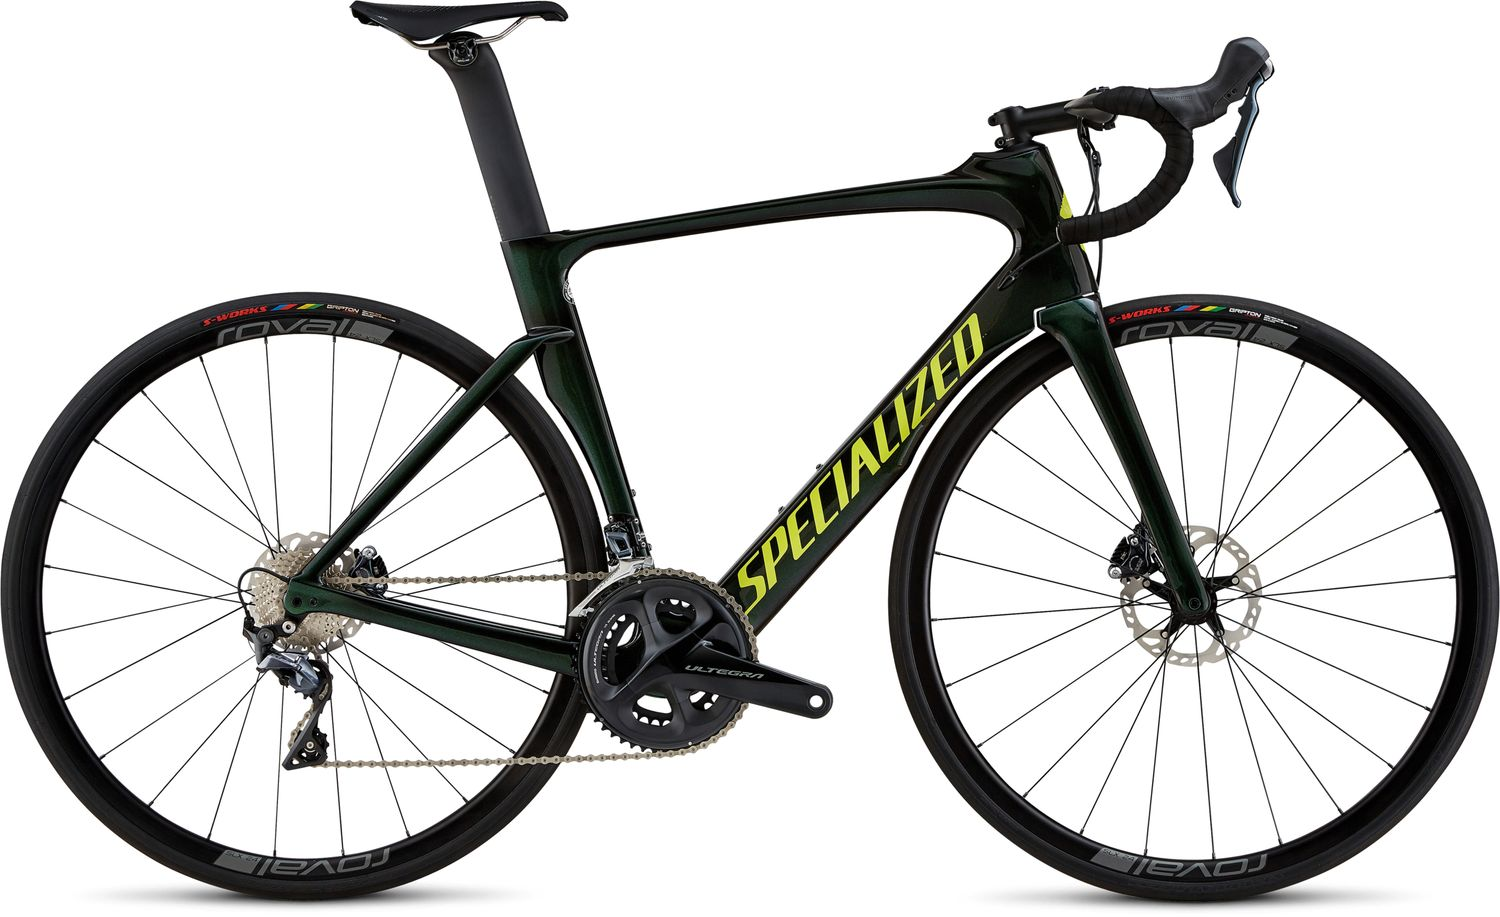 Specialized 2019 Venge Expert Disc